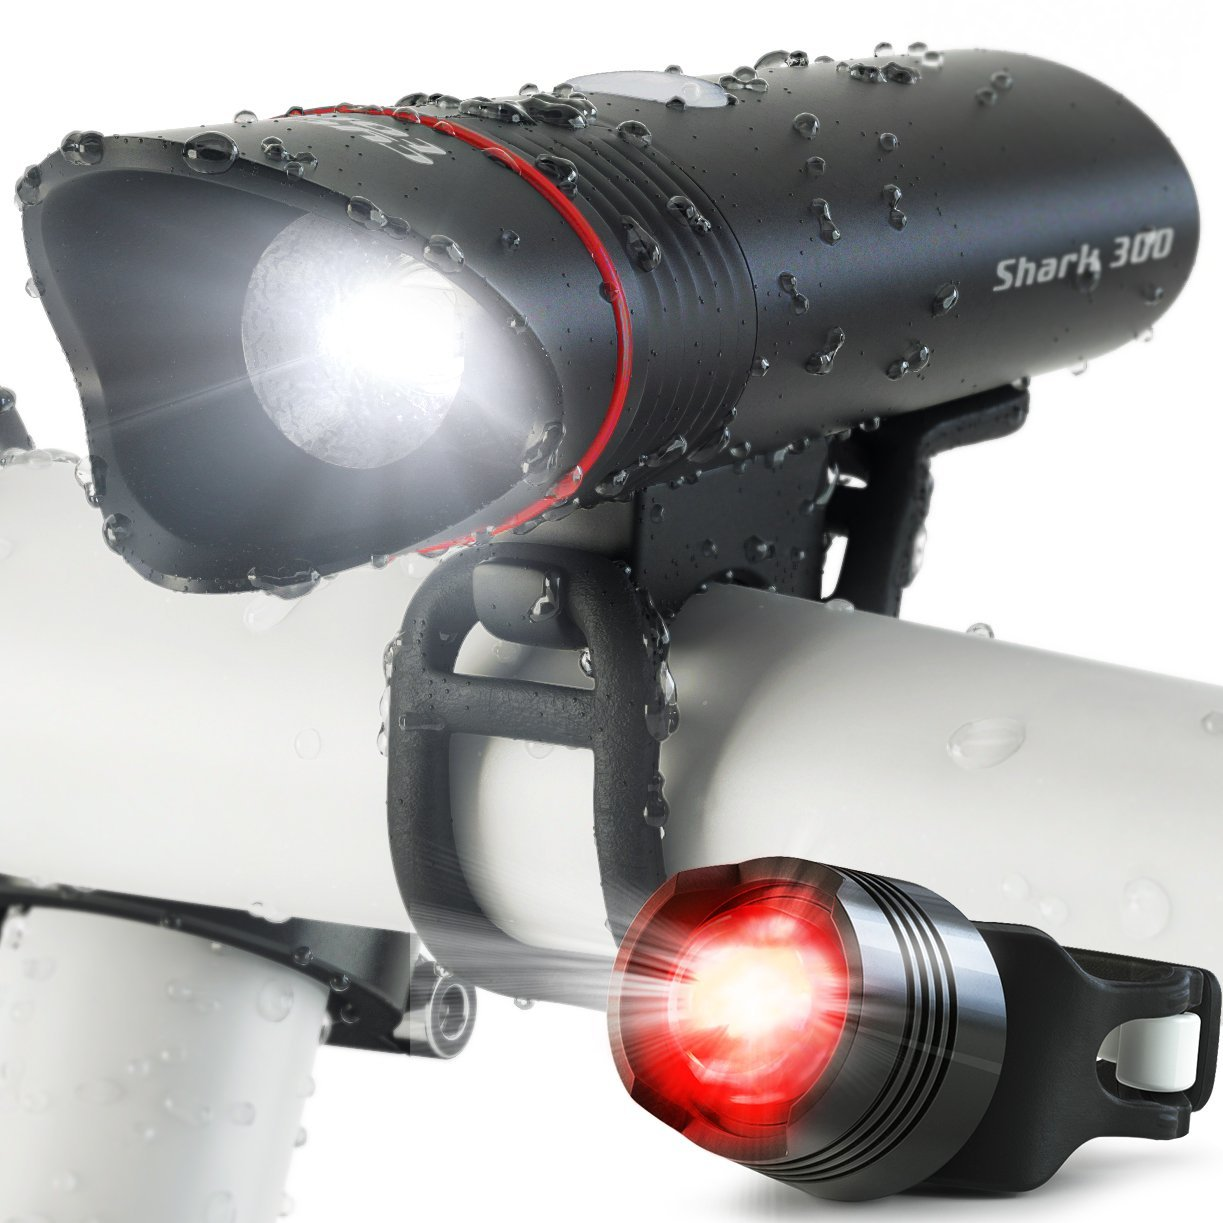 Cycle Torch Shark 300 Bicycle HeadLight